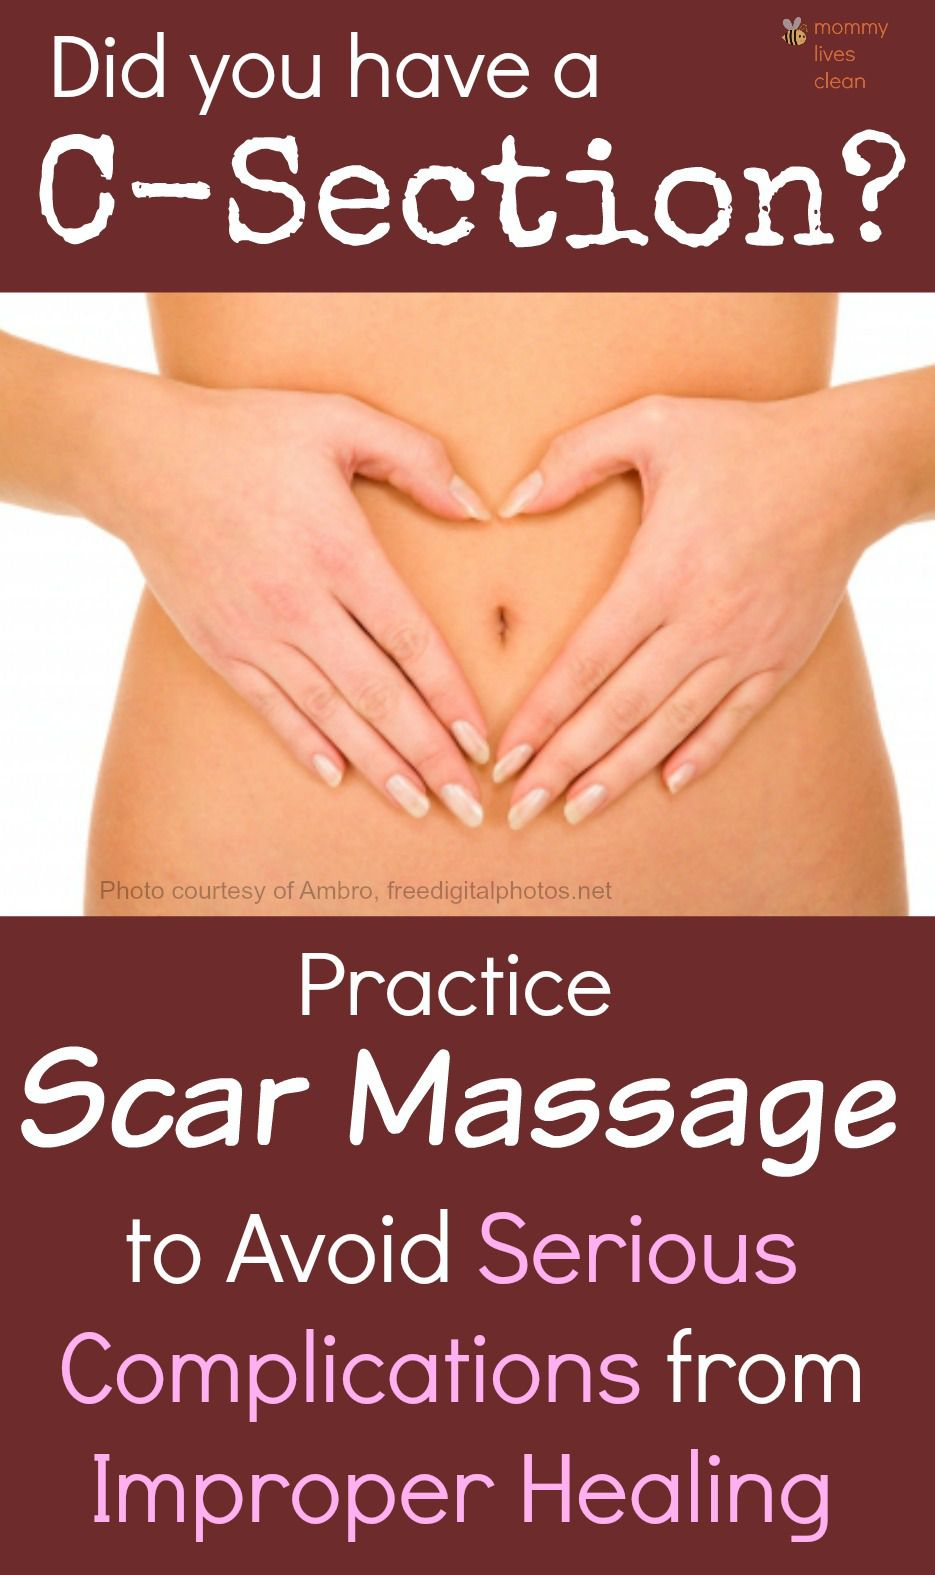 Do you massage your c section scar massage helps to avoid adhesions scar tissue which binds organs together causing serious problems later in life talk